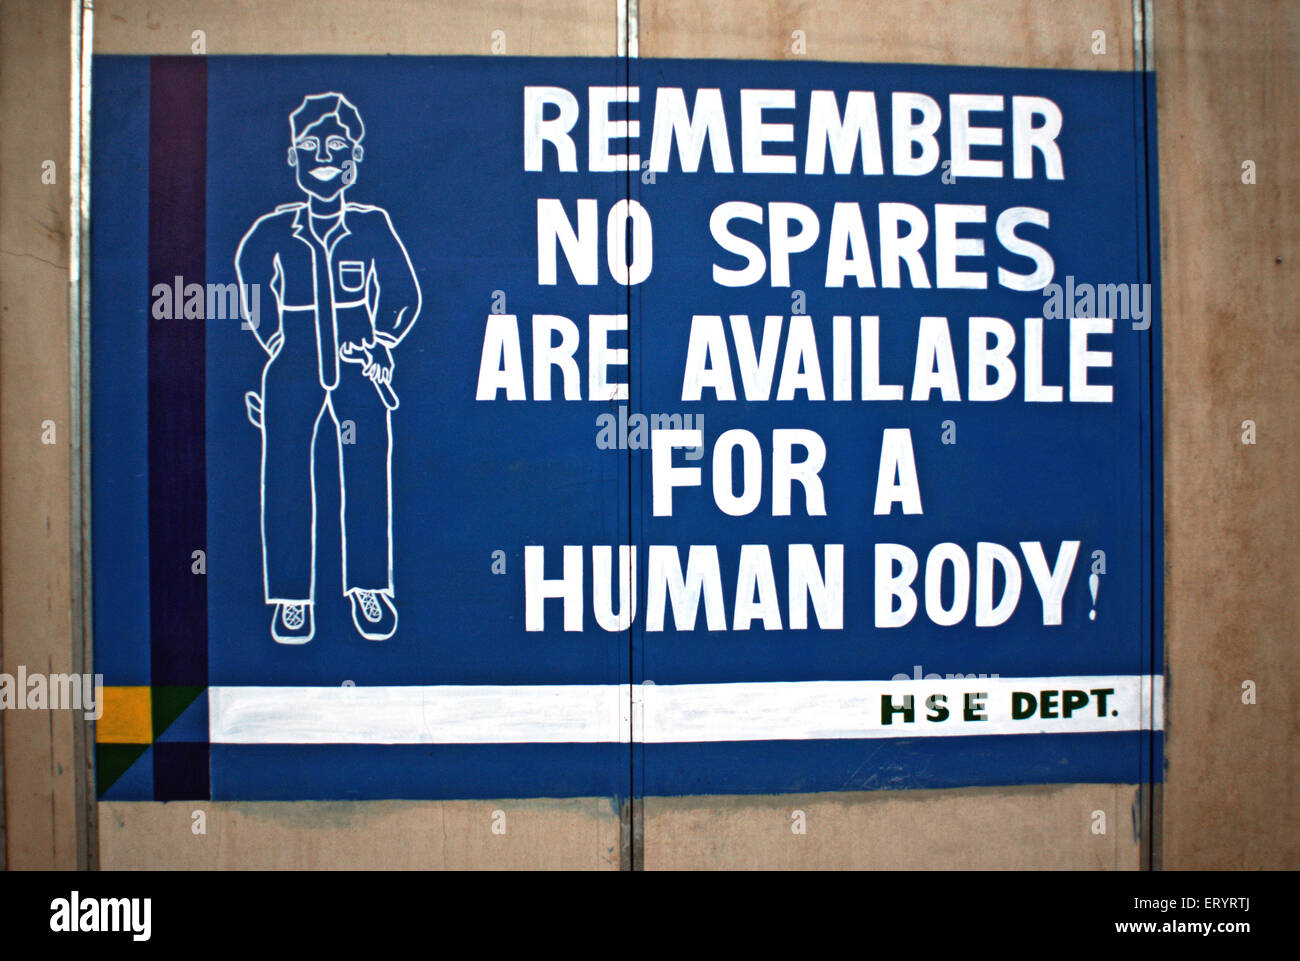 Safety signboard of remember no spare available for humanbody at site of hydroelectric project ; Uri - Stock Image